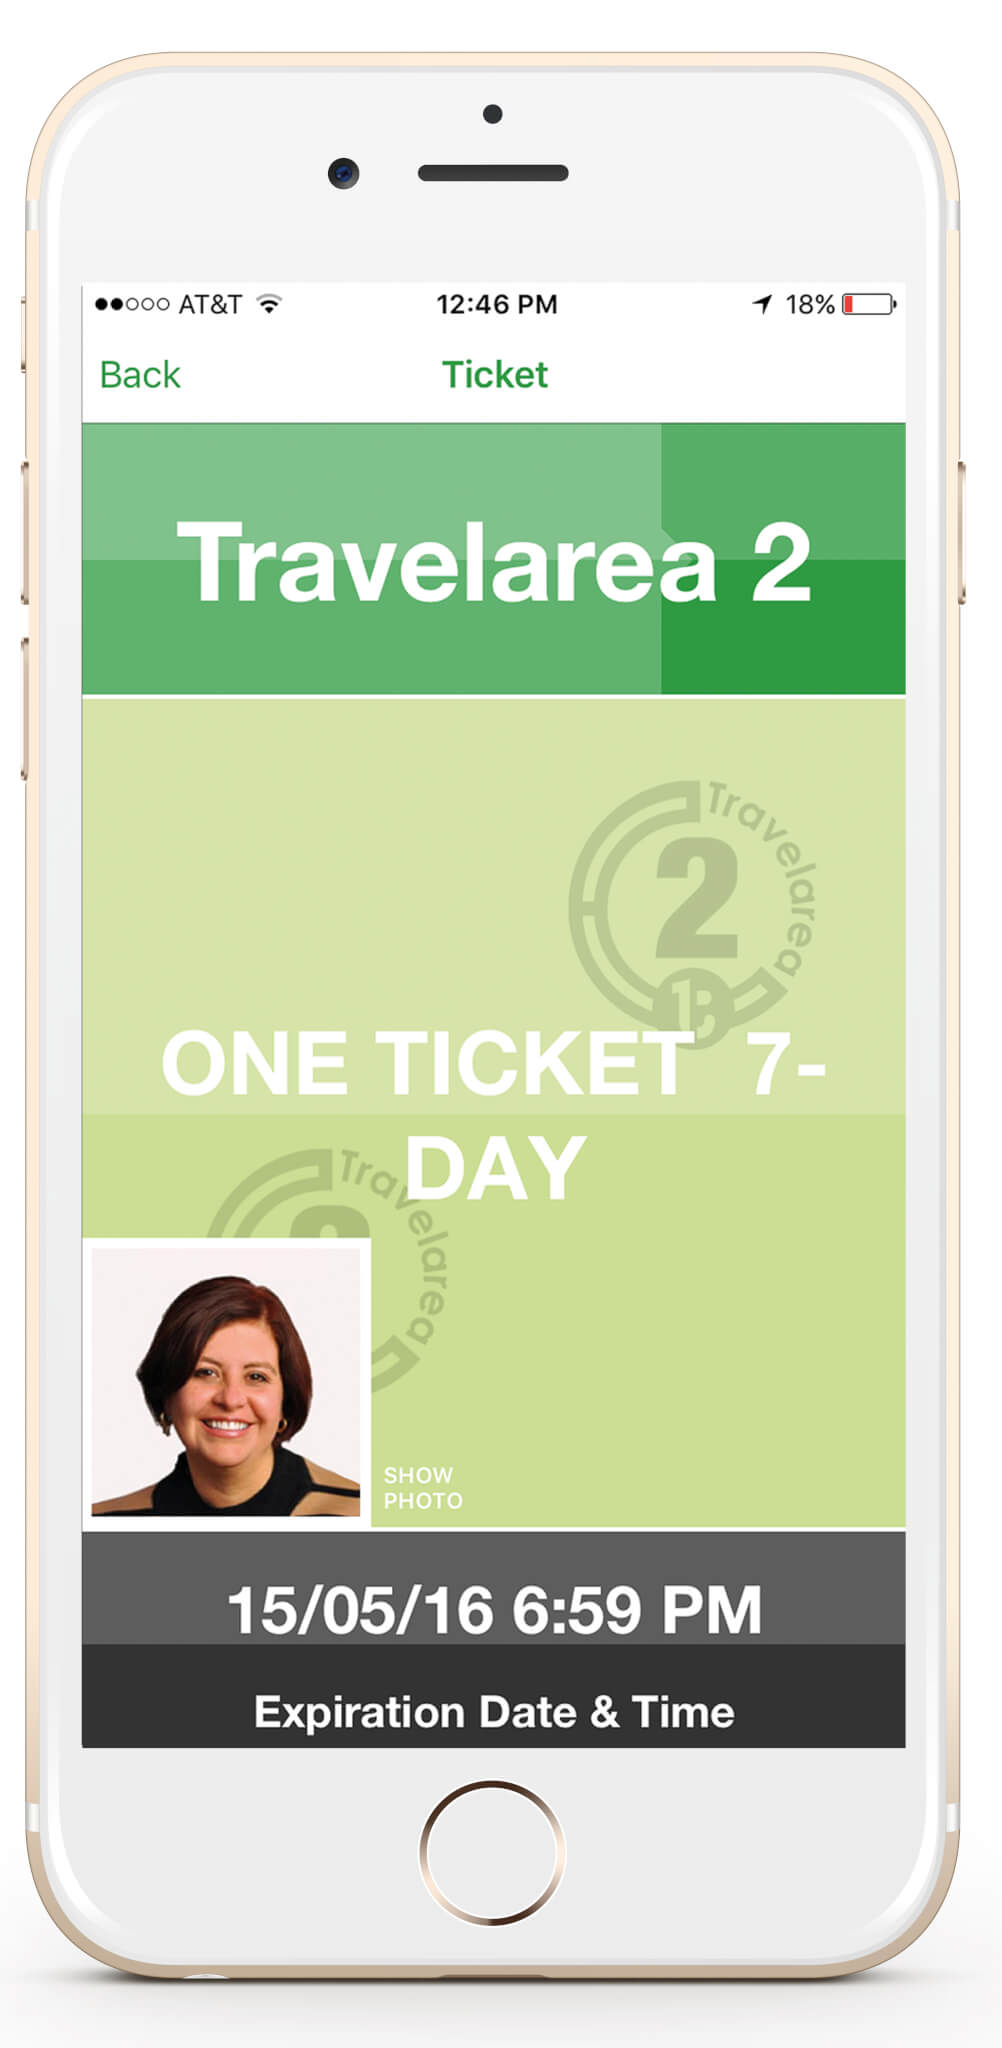 Photo ID for Mobile Ticketing